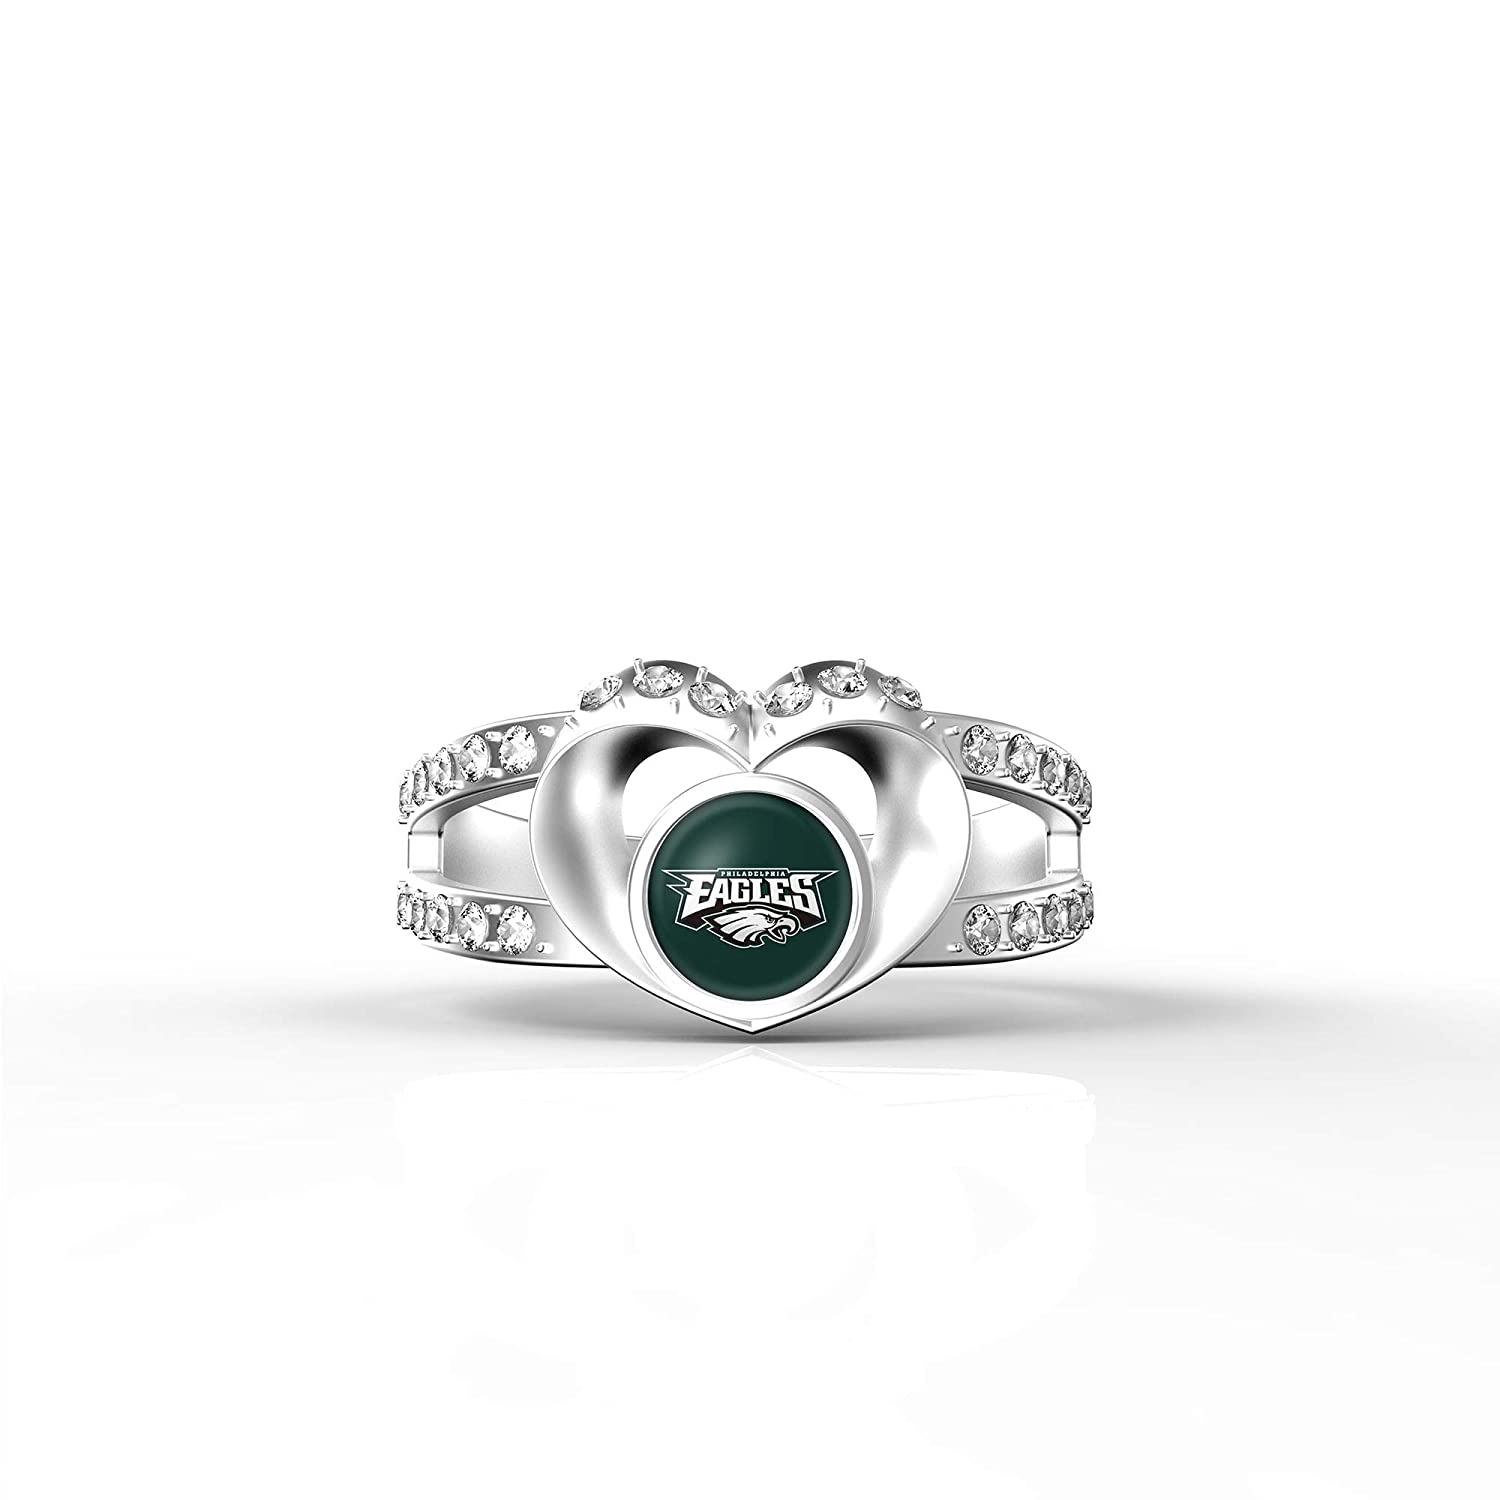 MT Sports store NFL Heart Shaped Lady Ring Lady Exquisite Heart Shaped Ring Philadelphia Eagles